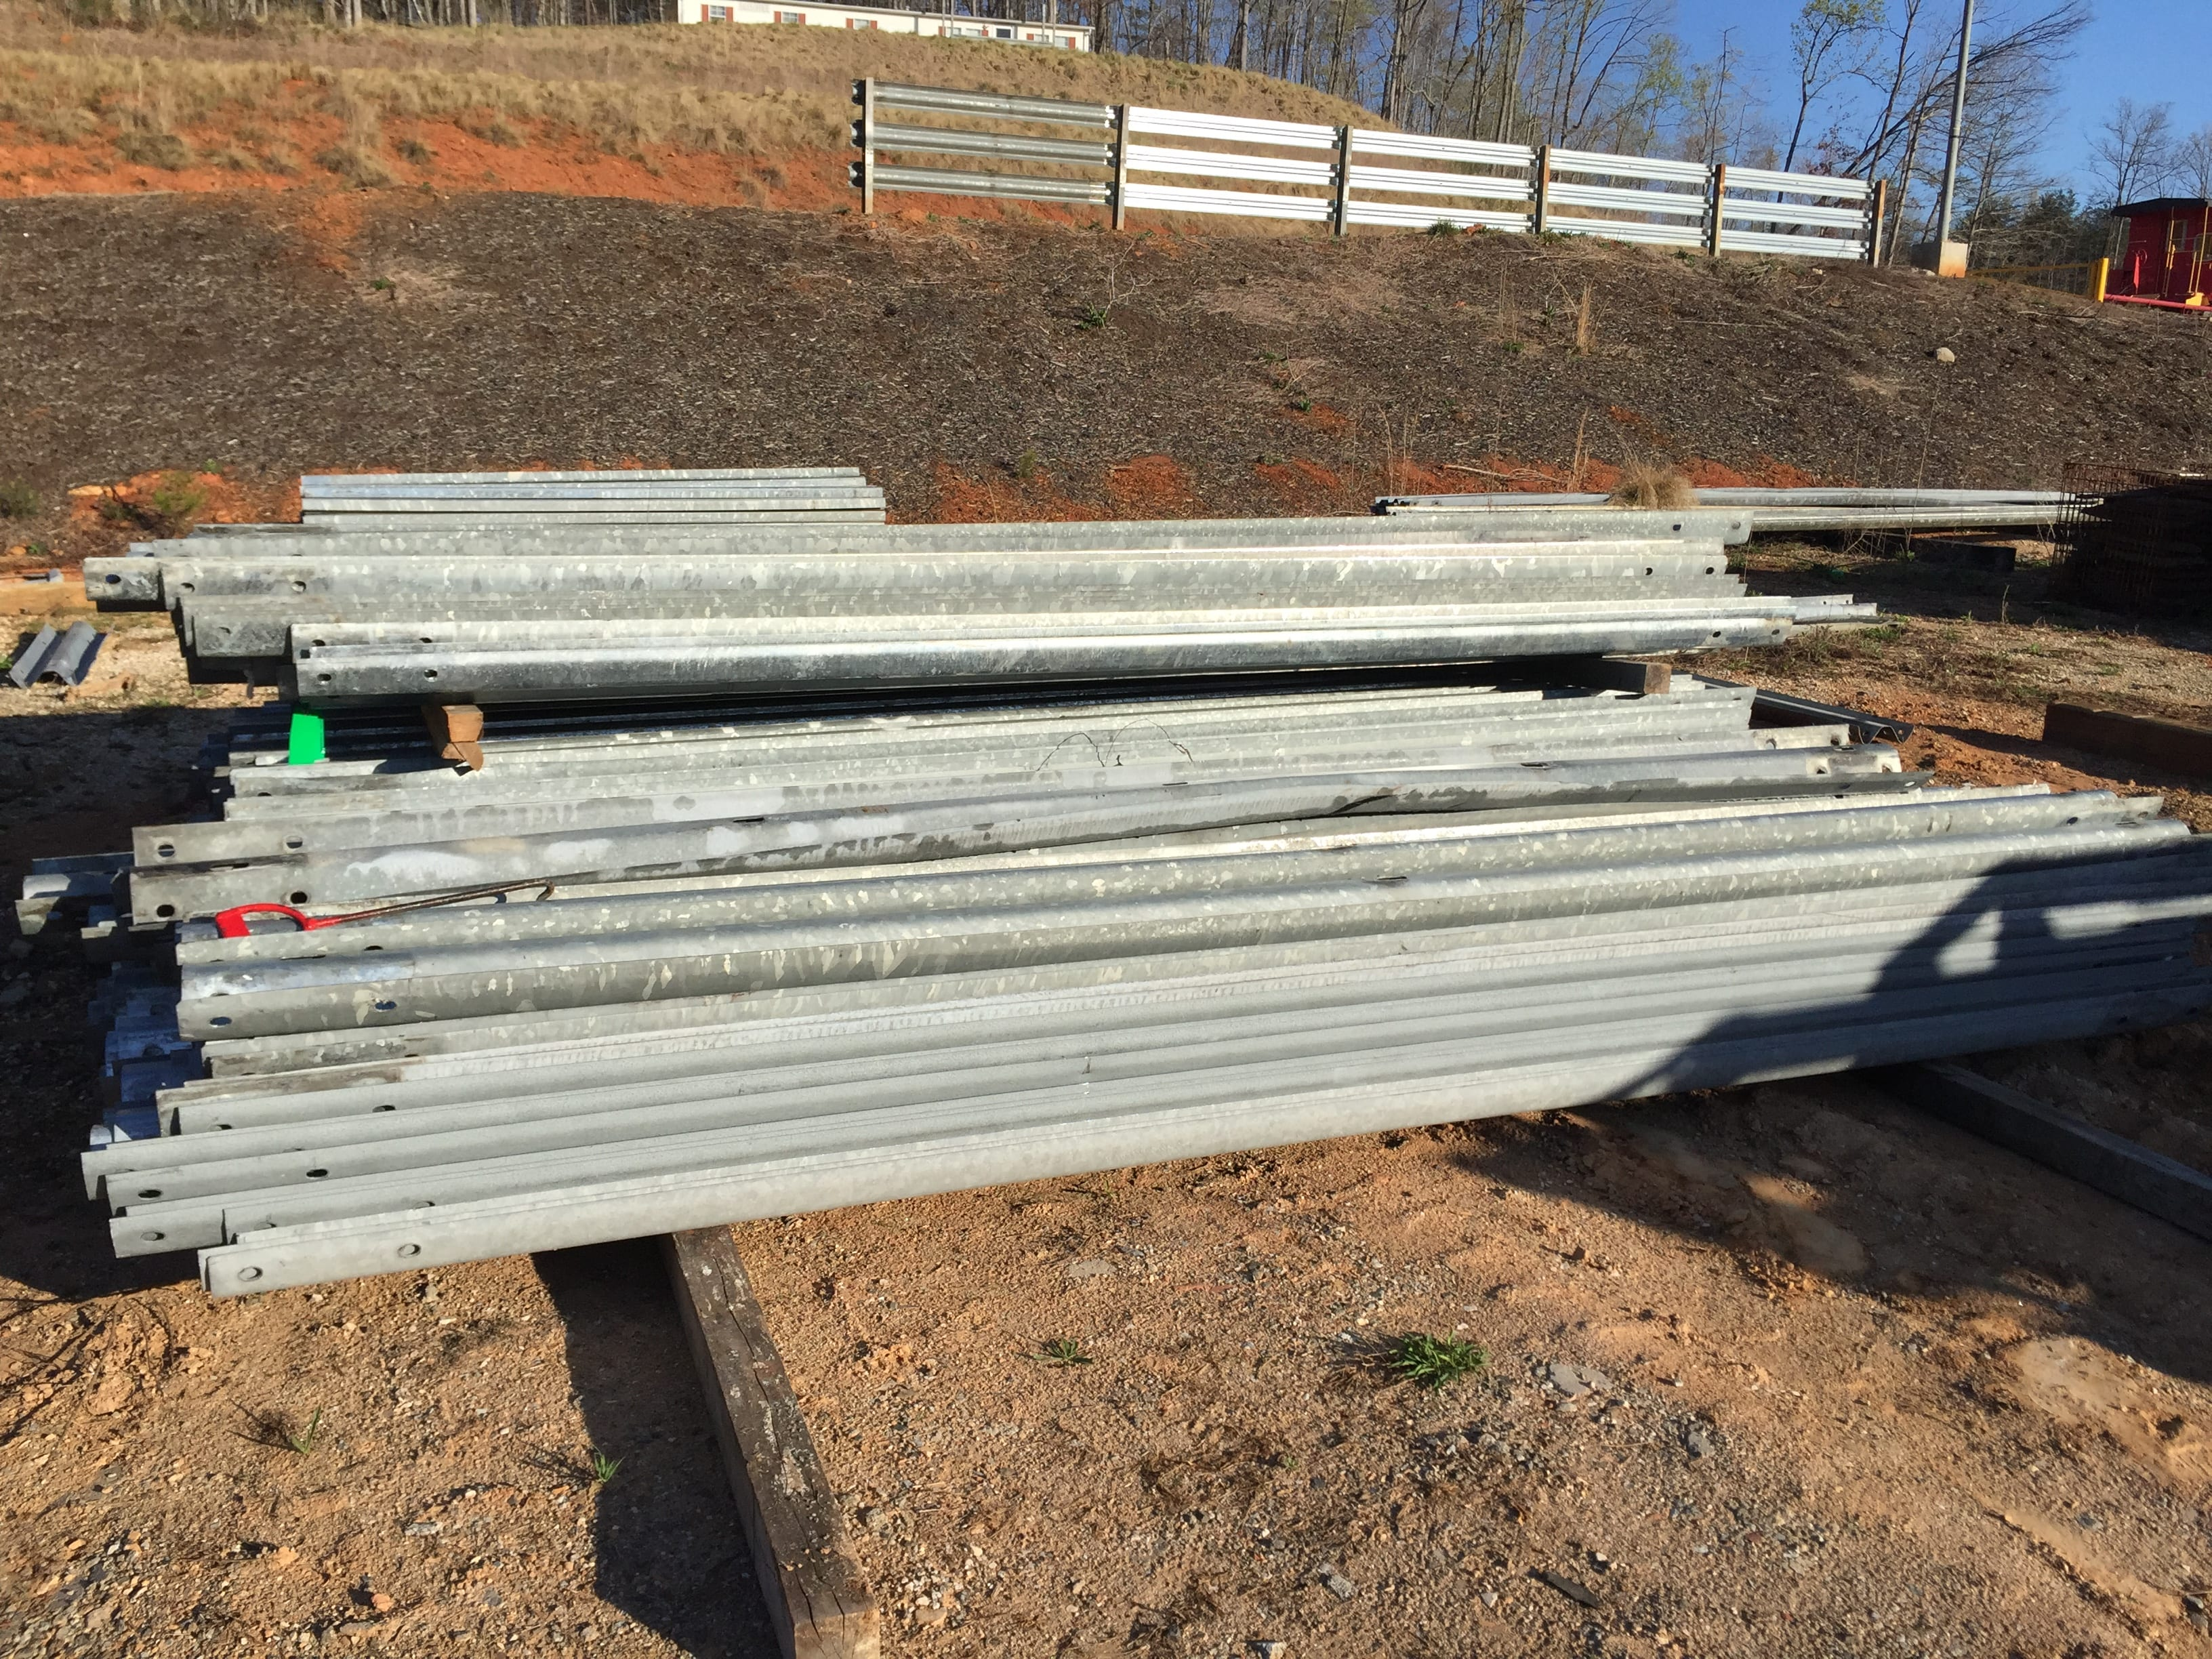 Guardrail Corral has Long and Short W-Beam Guardrail for sale